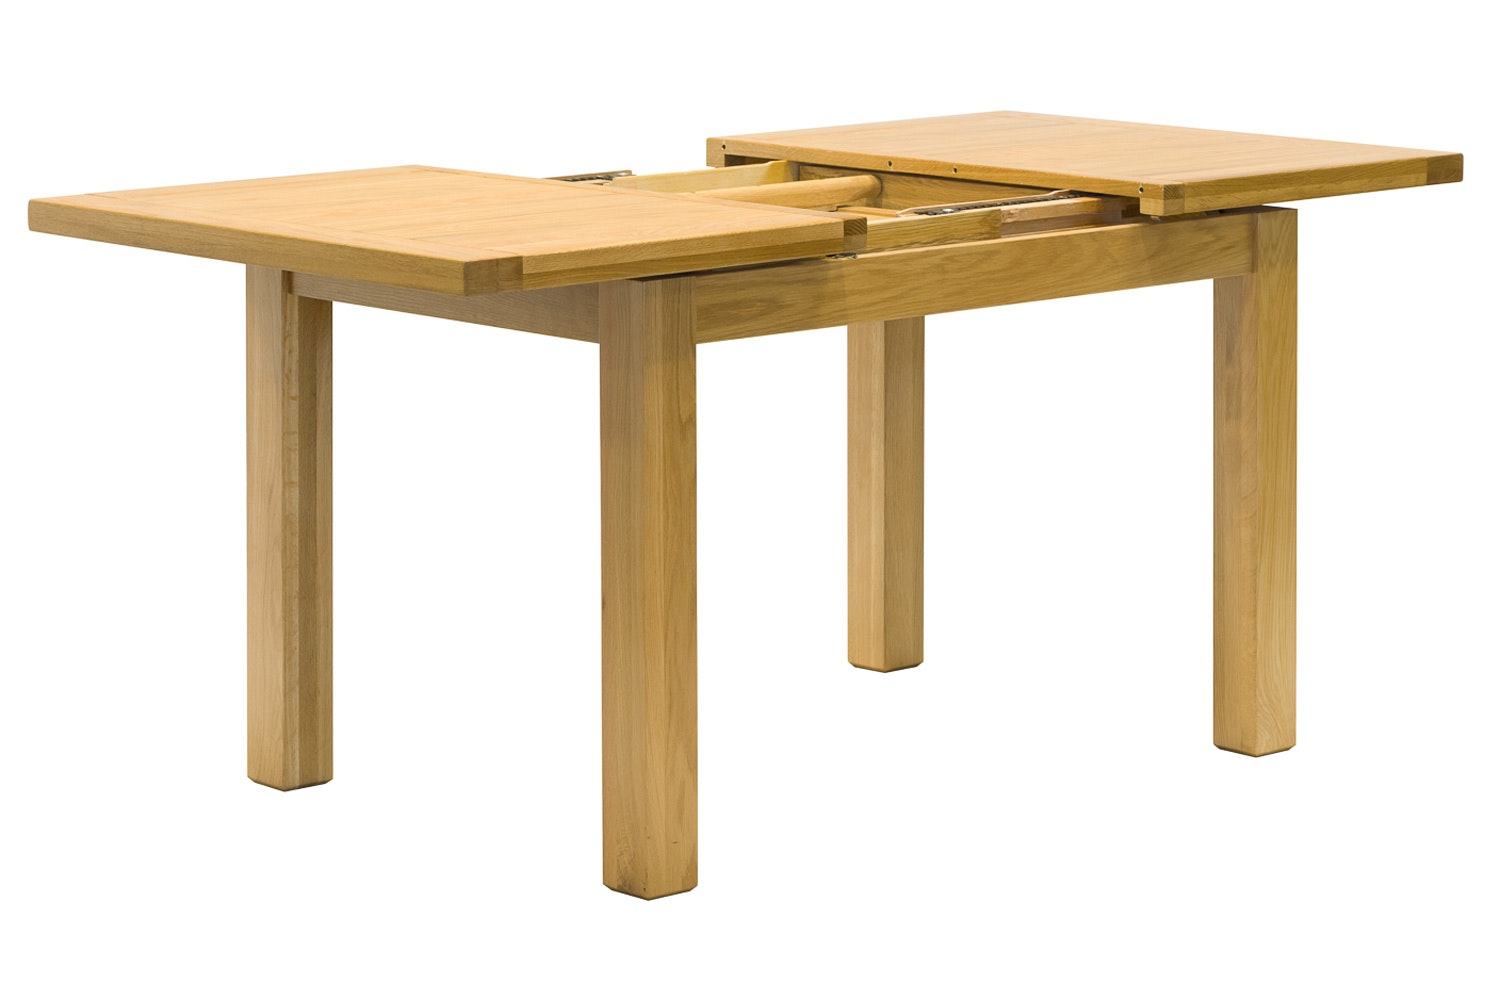 Crean table extended